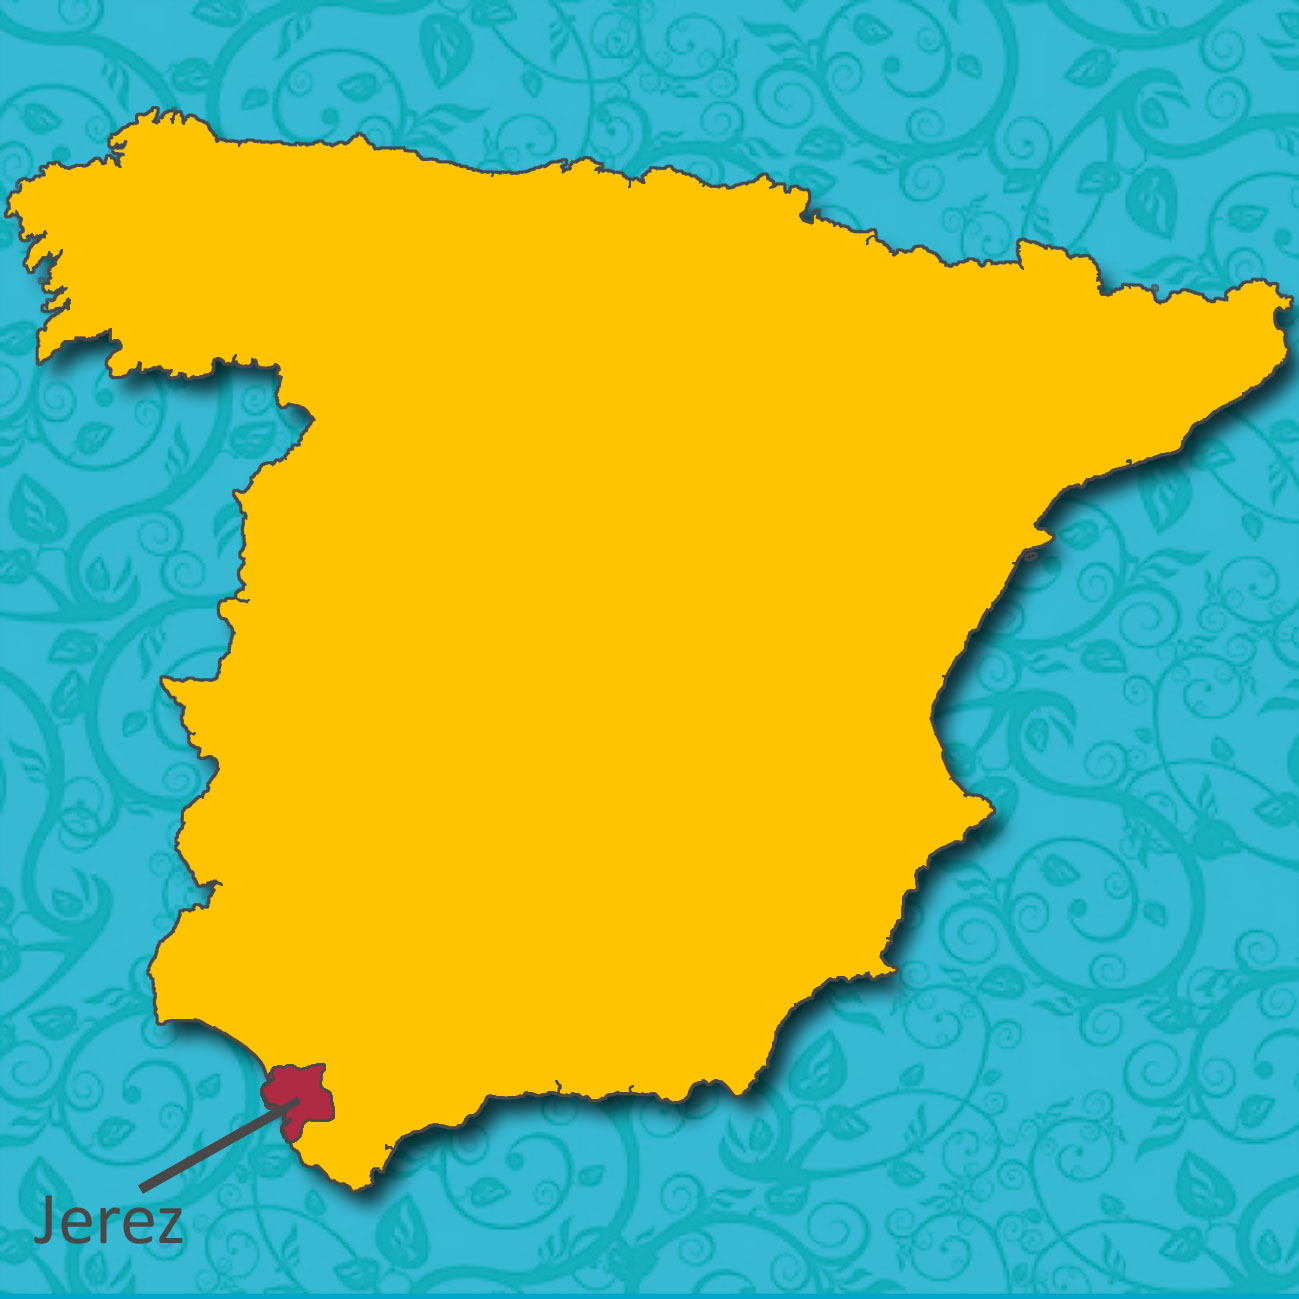 Spain_Map_Sherry_Vines